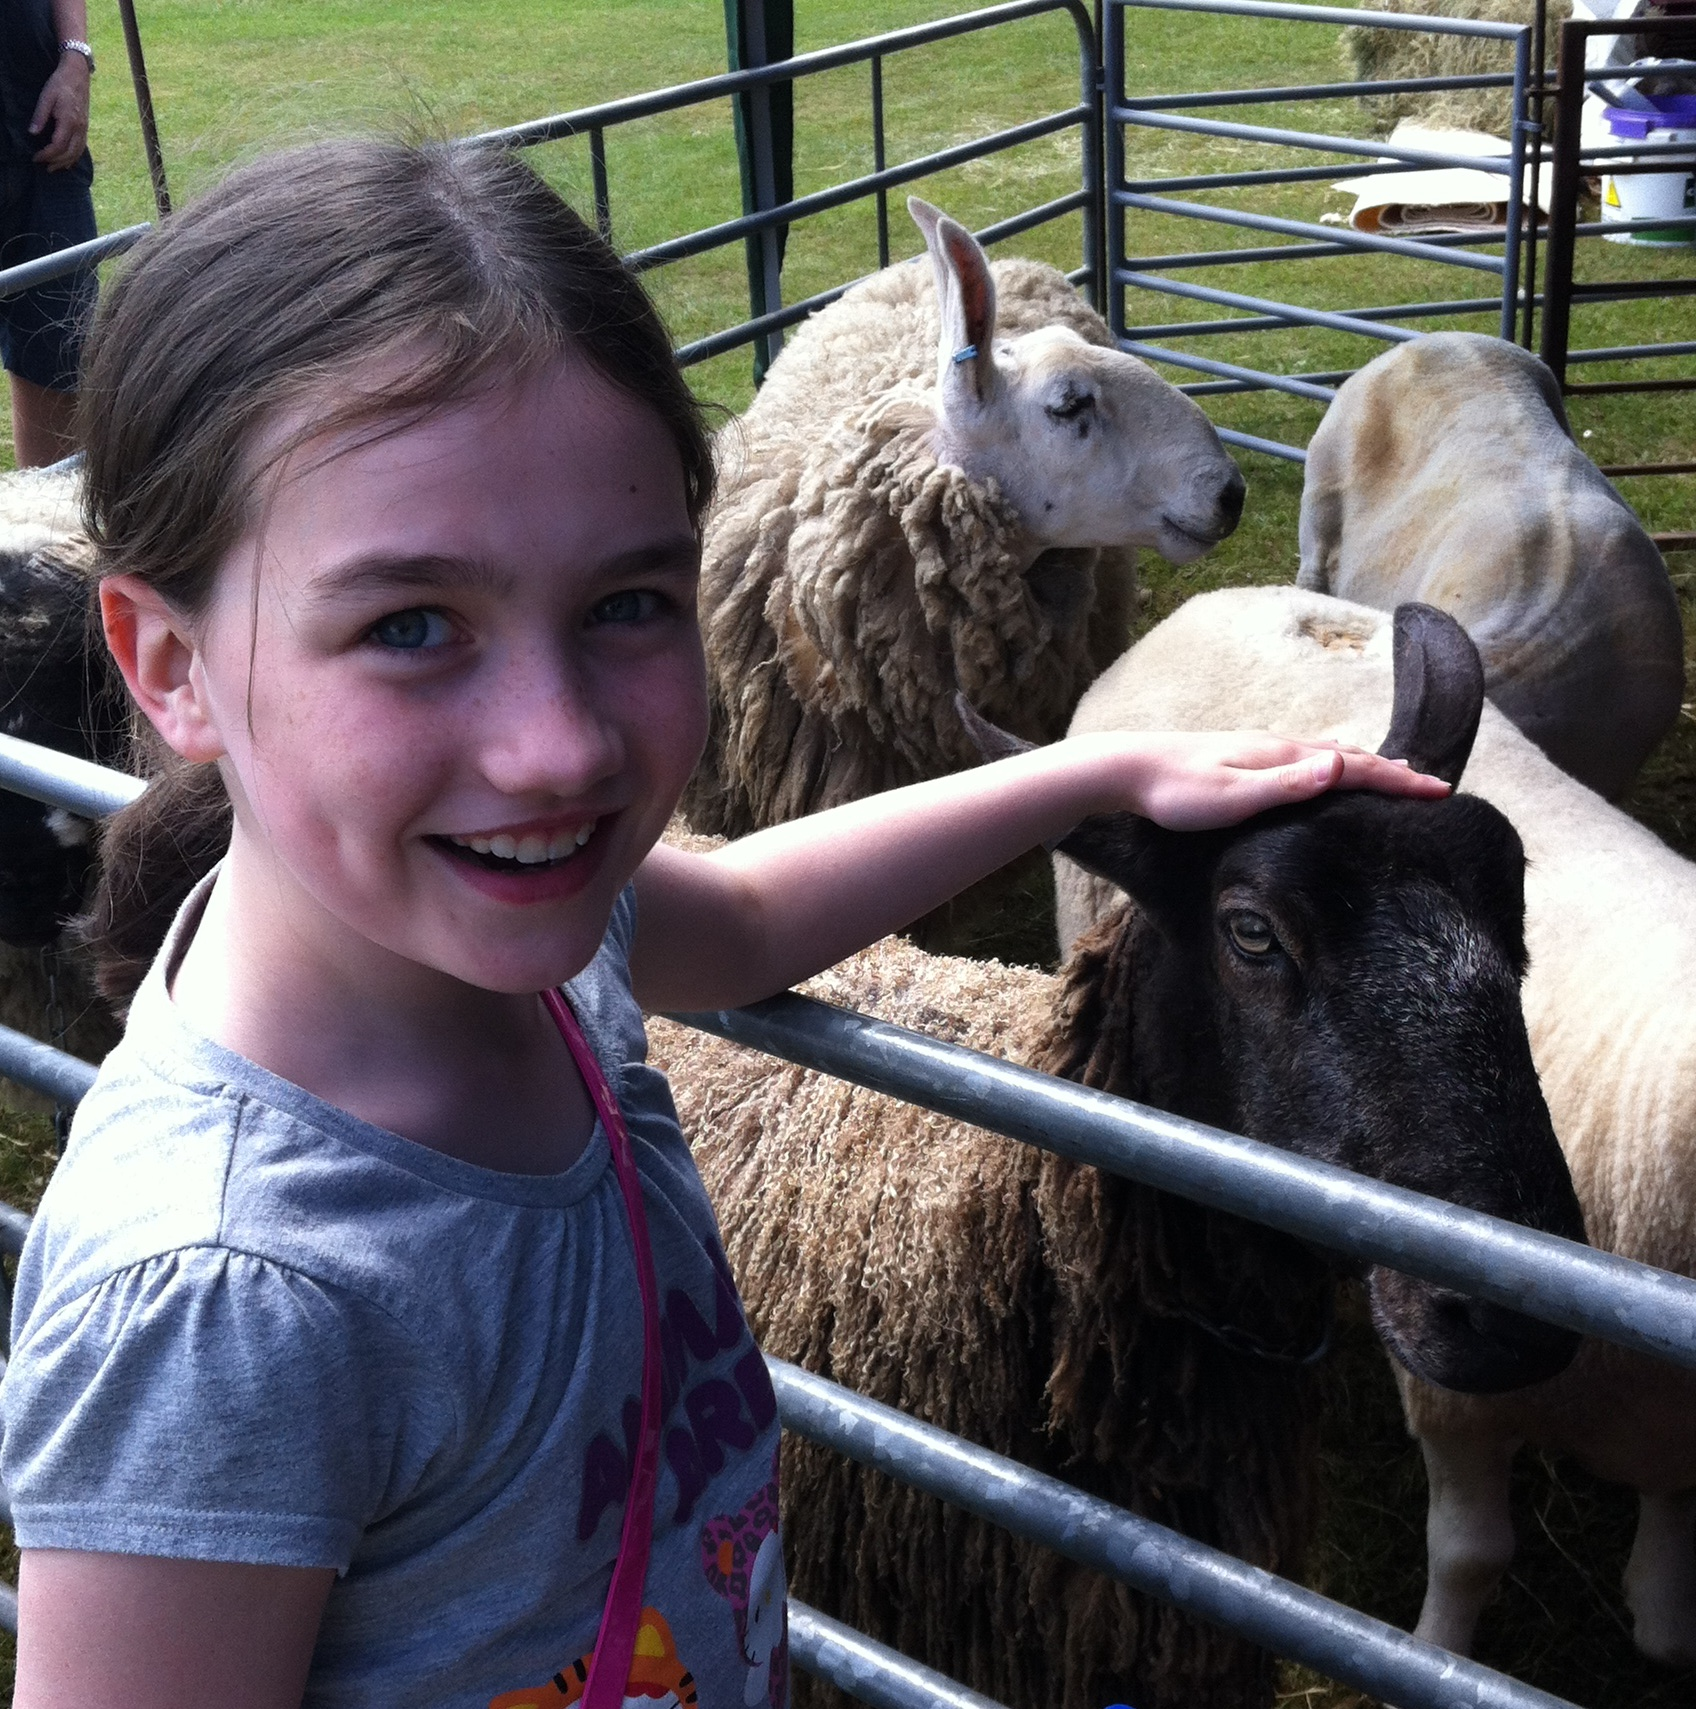 Katie petting sheep